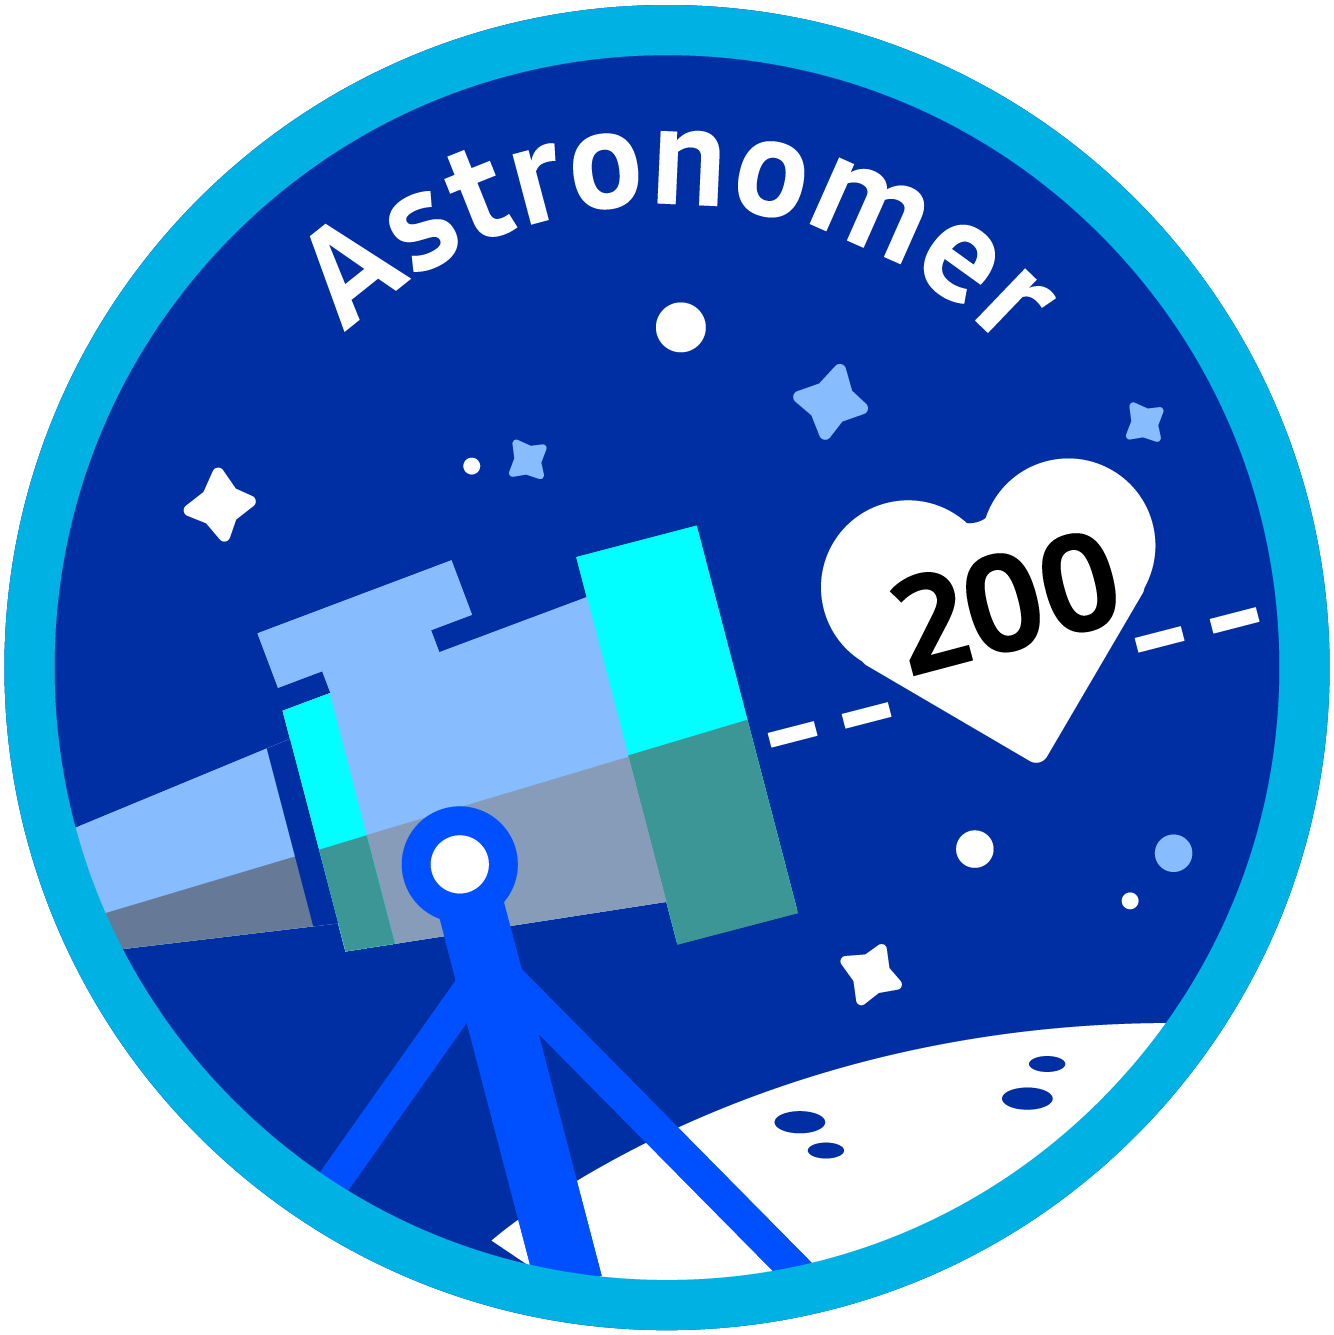 Astronomer